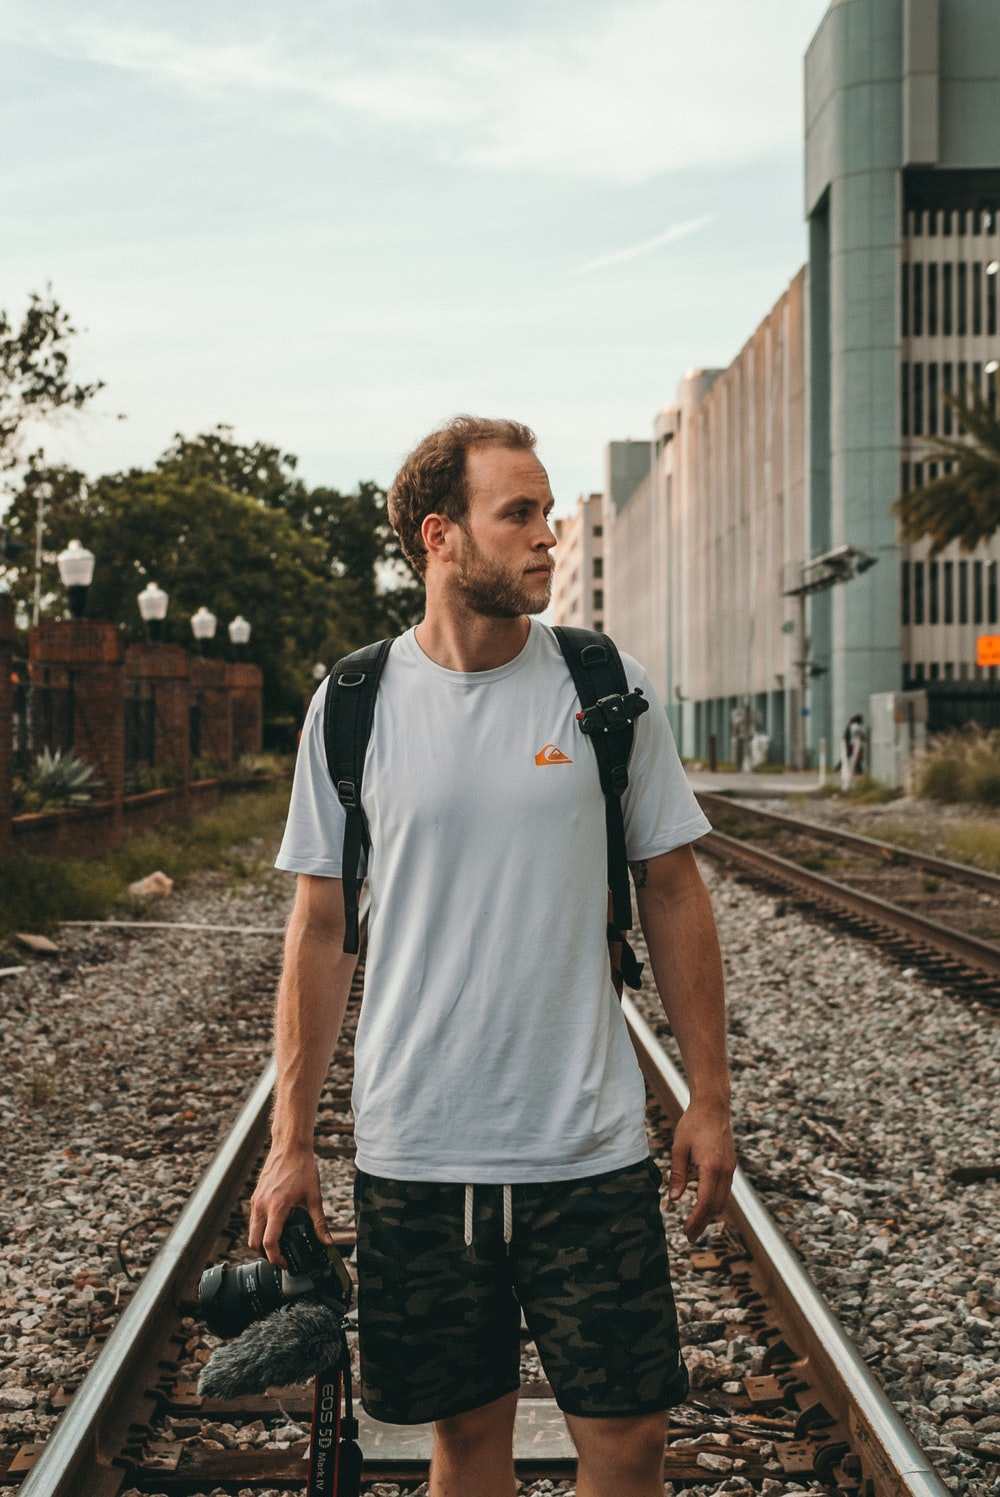 man standing on train rail at daytime